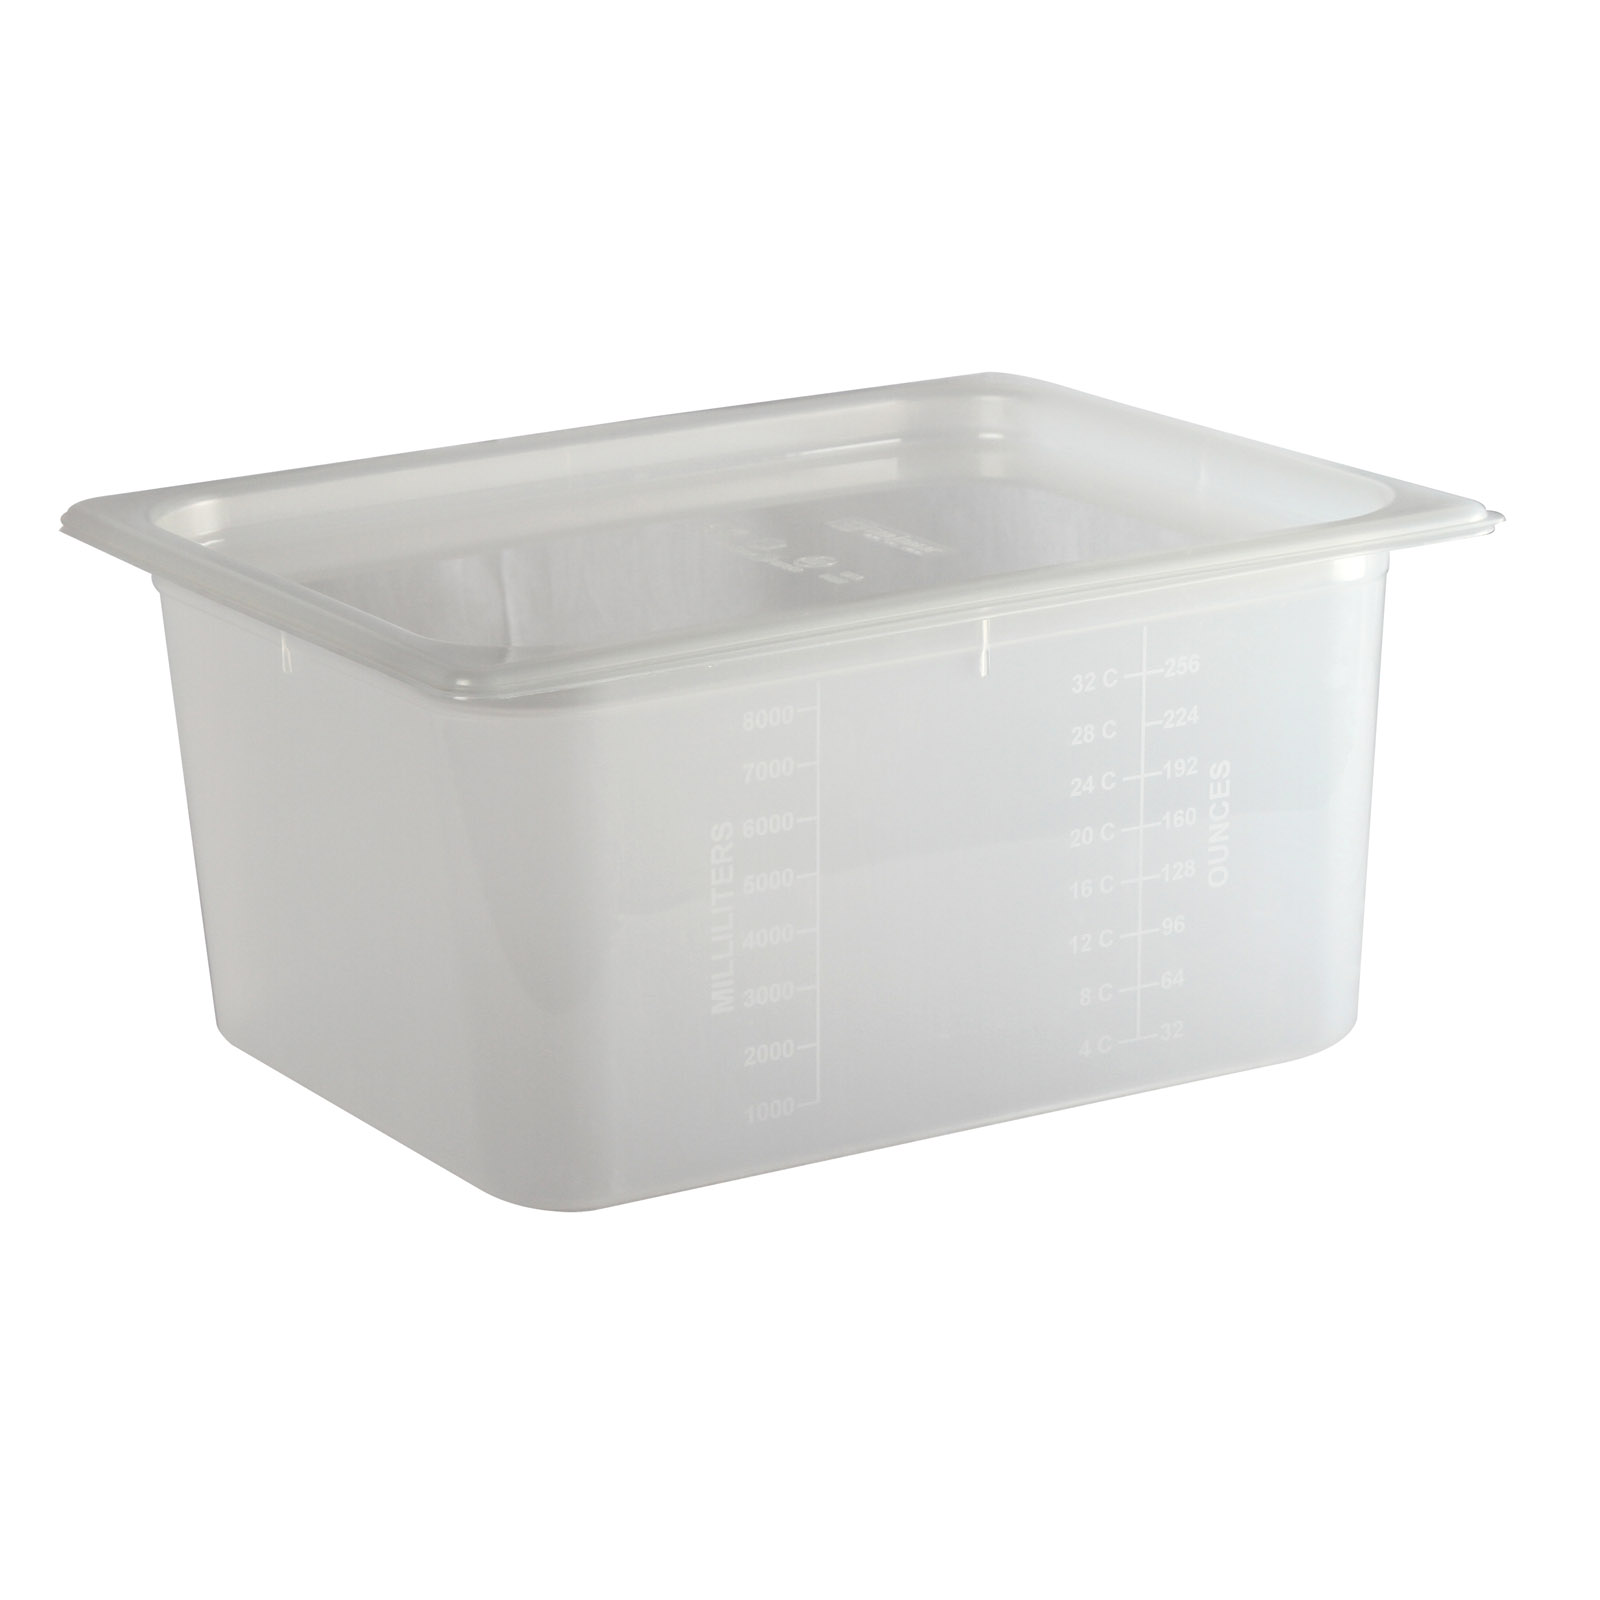 San Jamar MP12 food pan, plastic